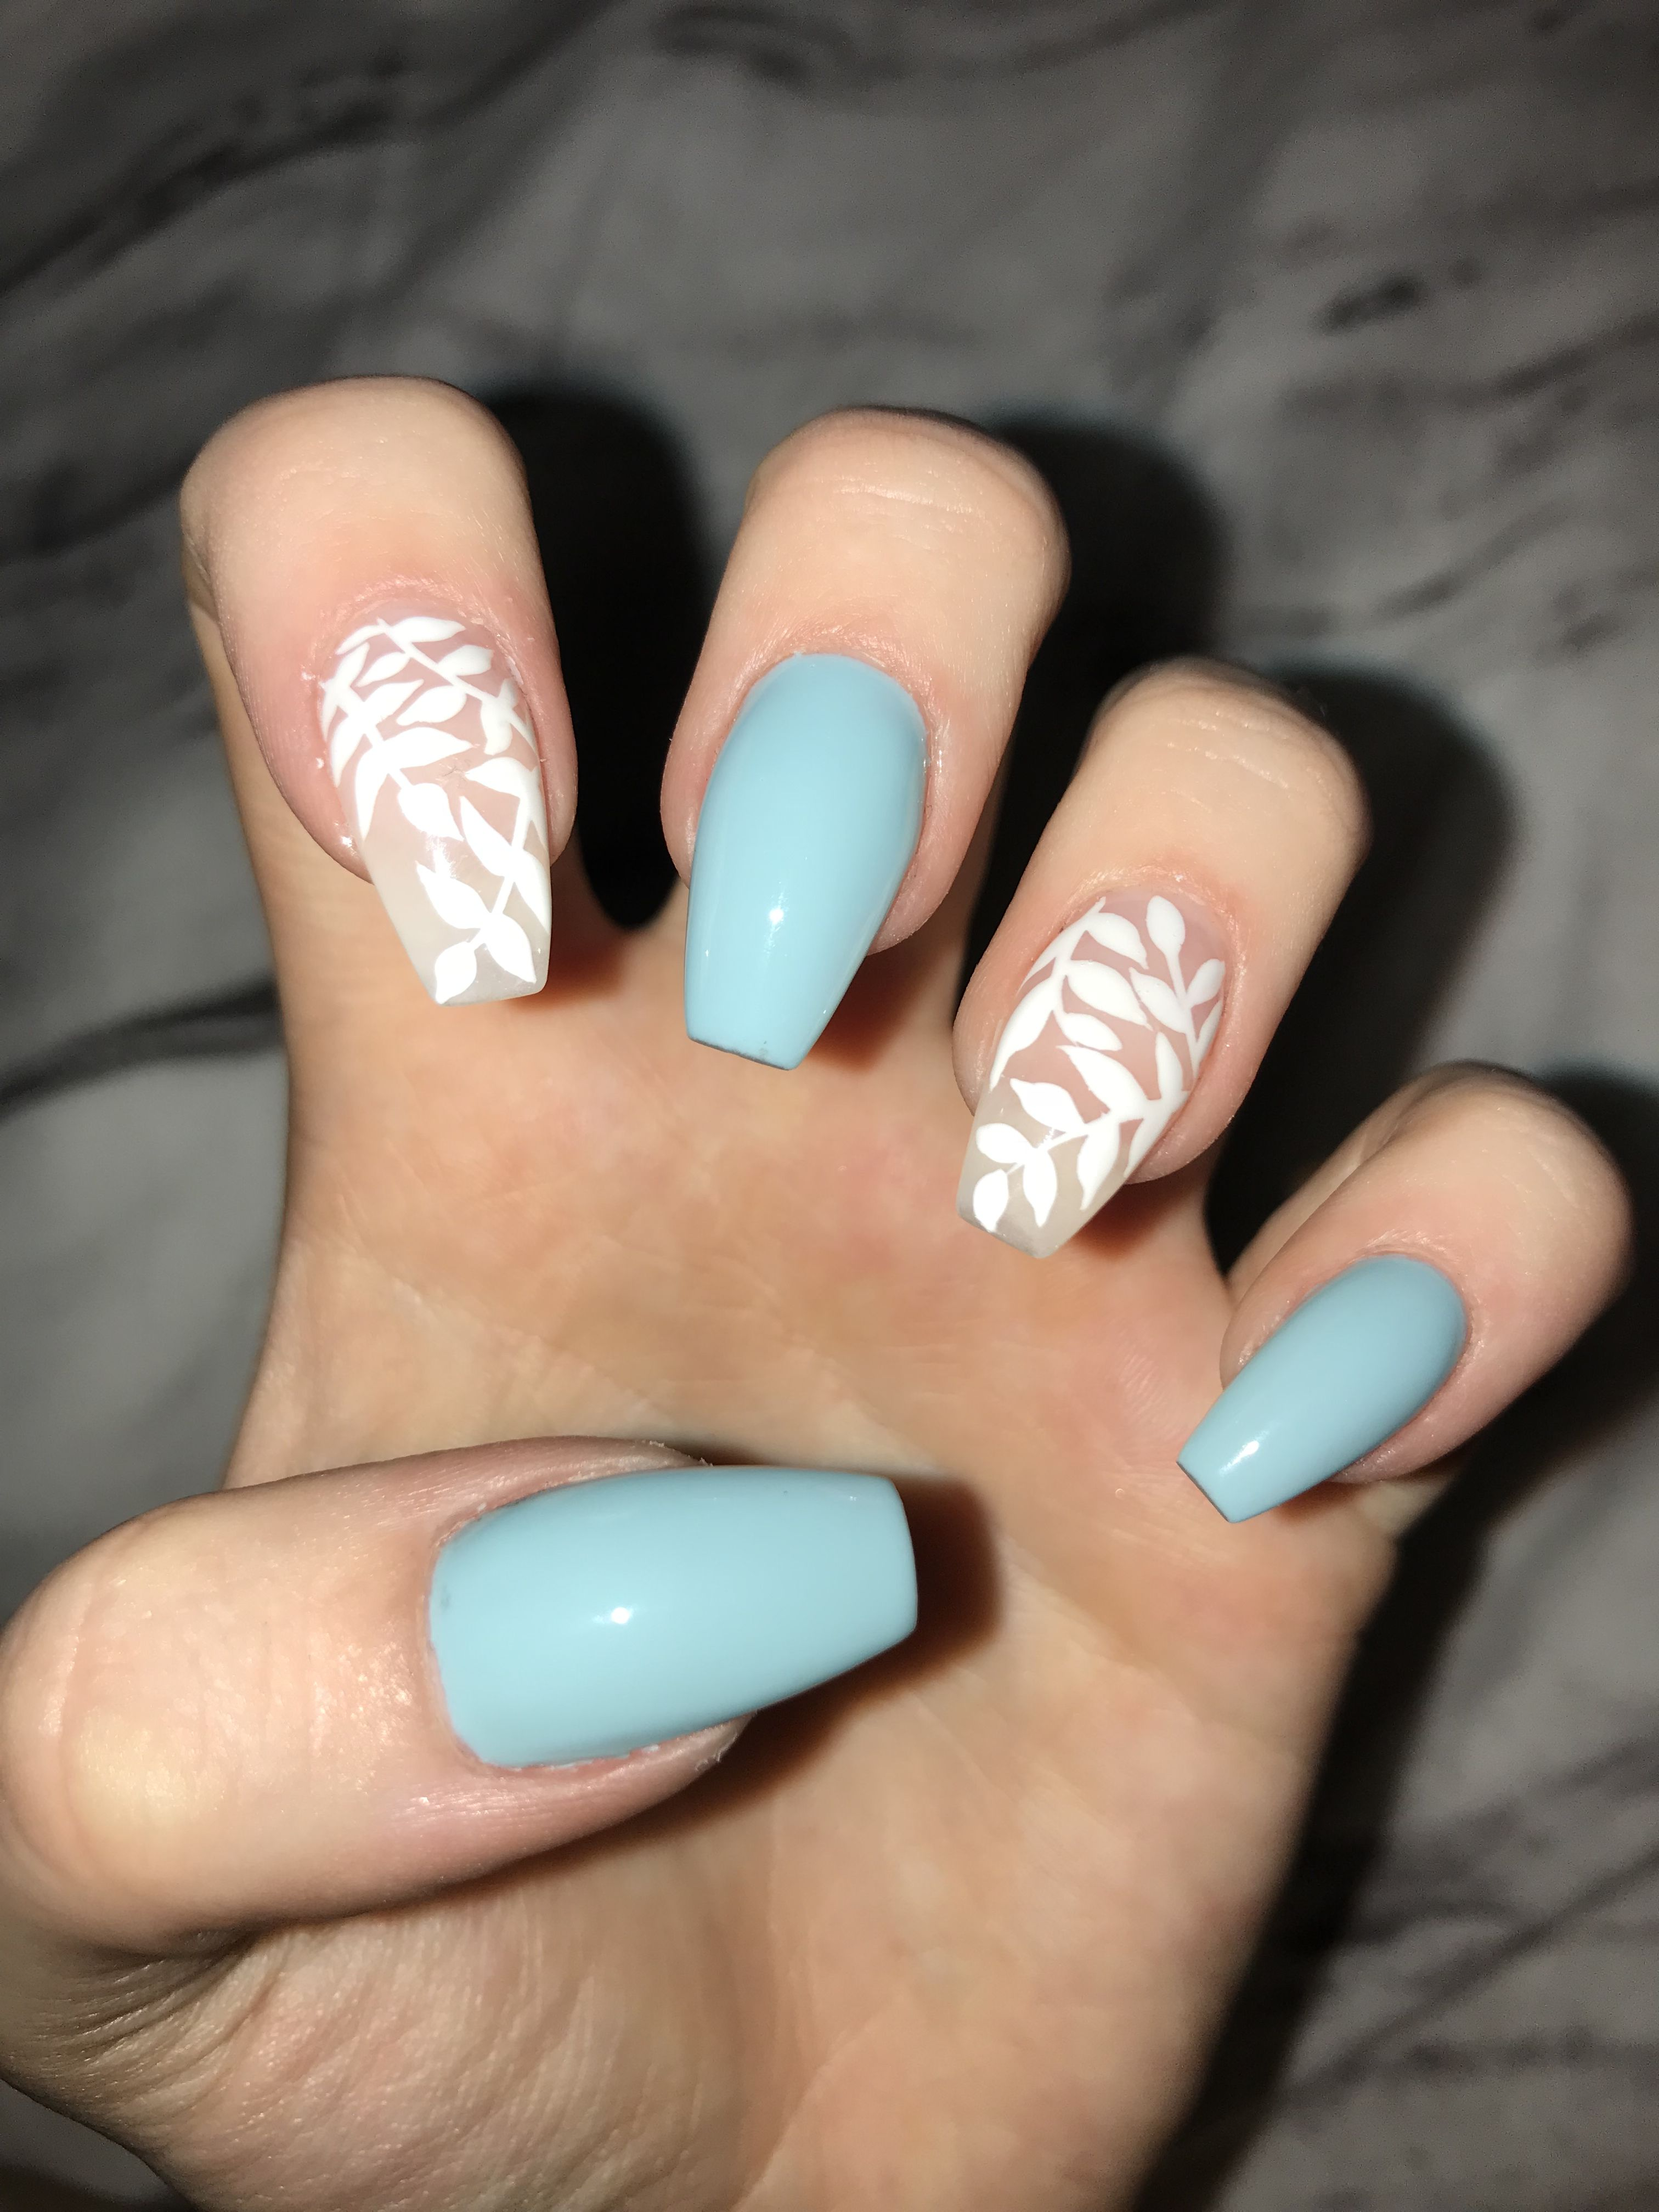 Blue Acrylic Coffin Nails With White Leaf Nail Art Nails Cute Acrylic Nails Daisy Nails